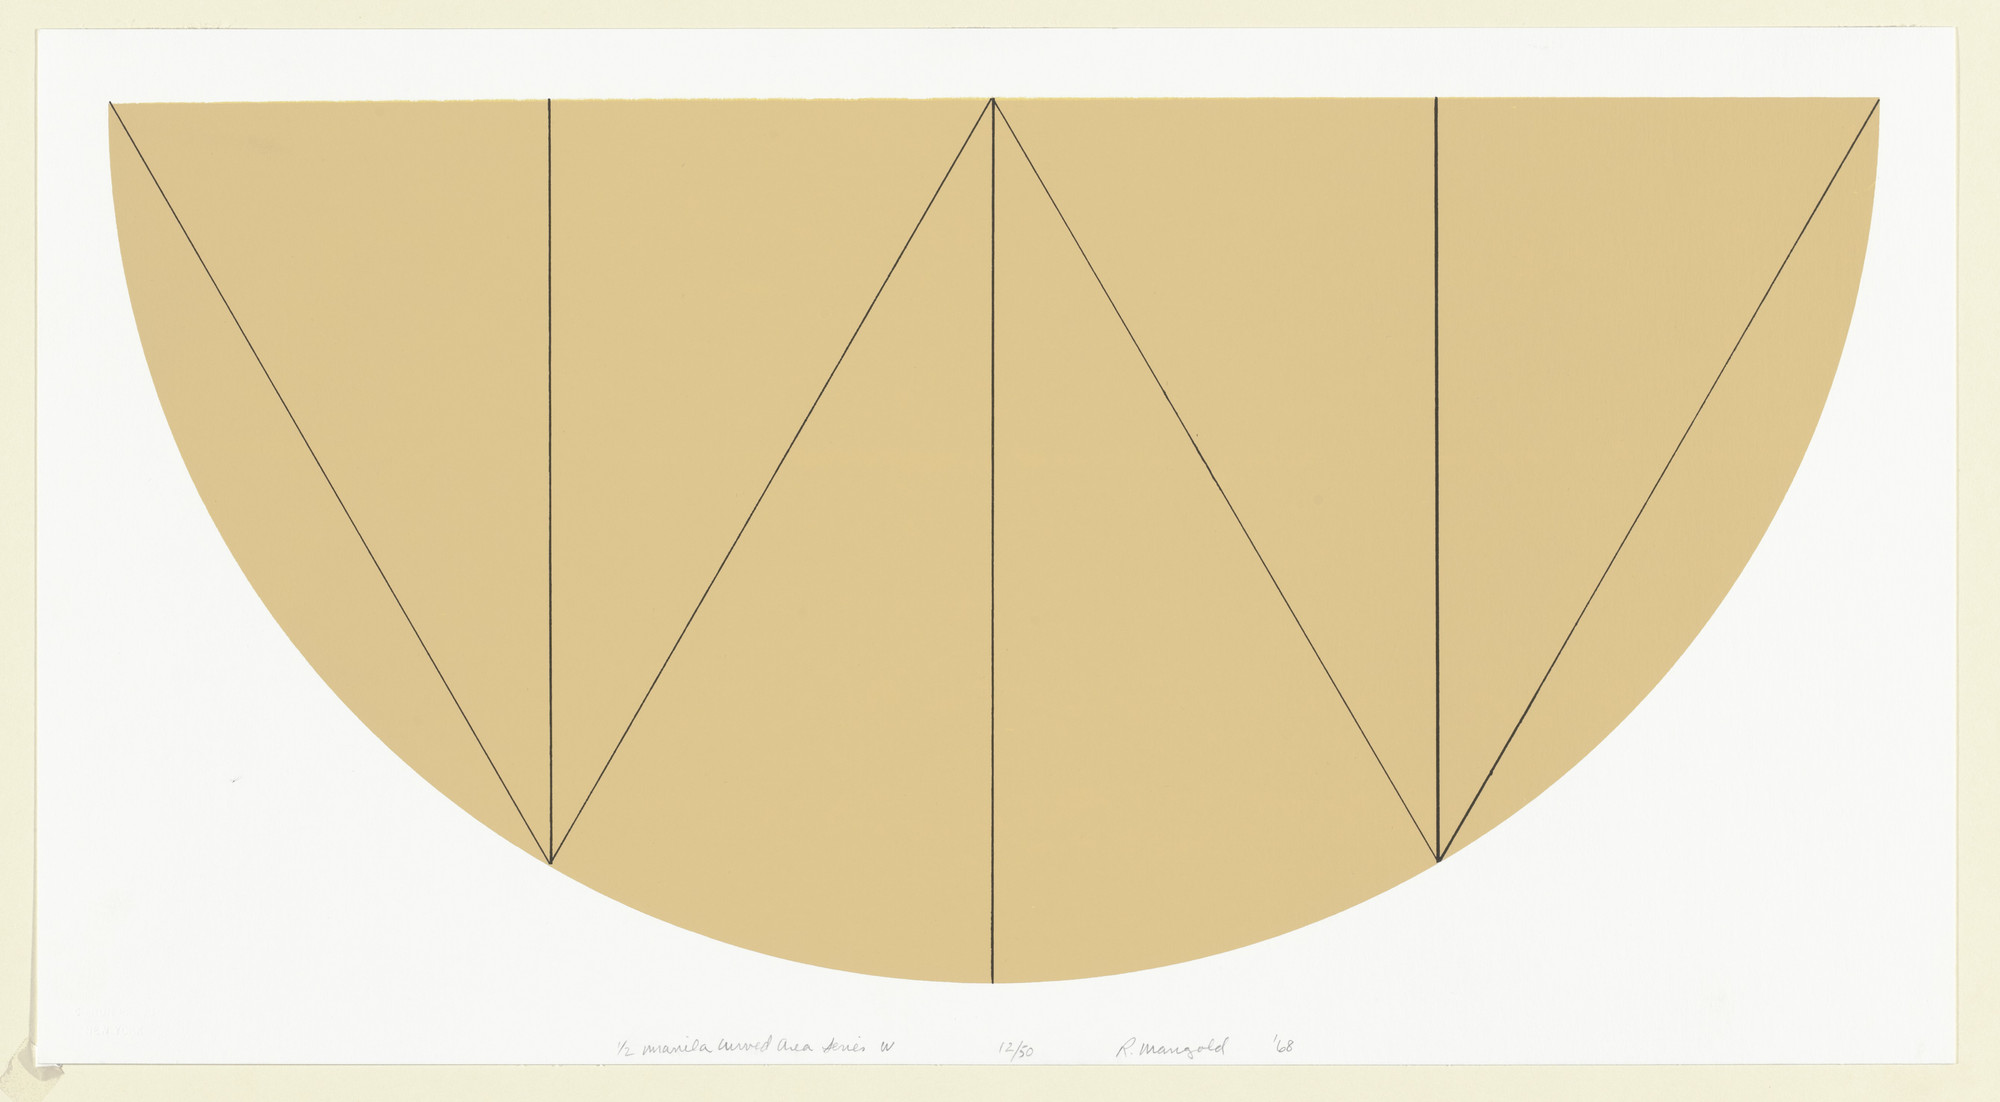 Robert Mangold. 1/2 Manila Curved Area Series W. 1968